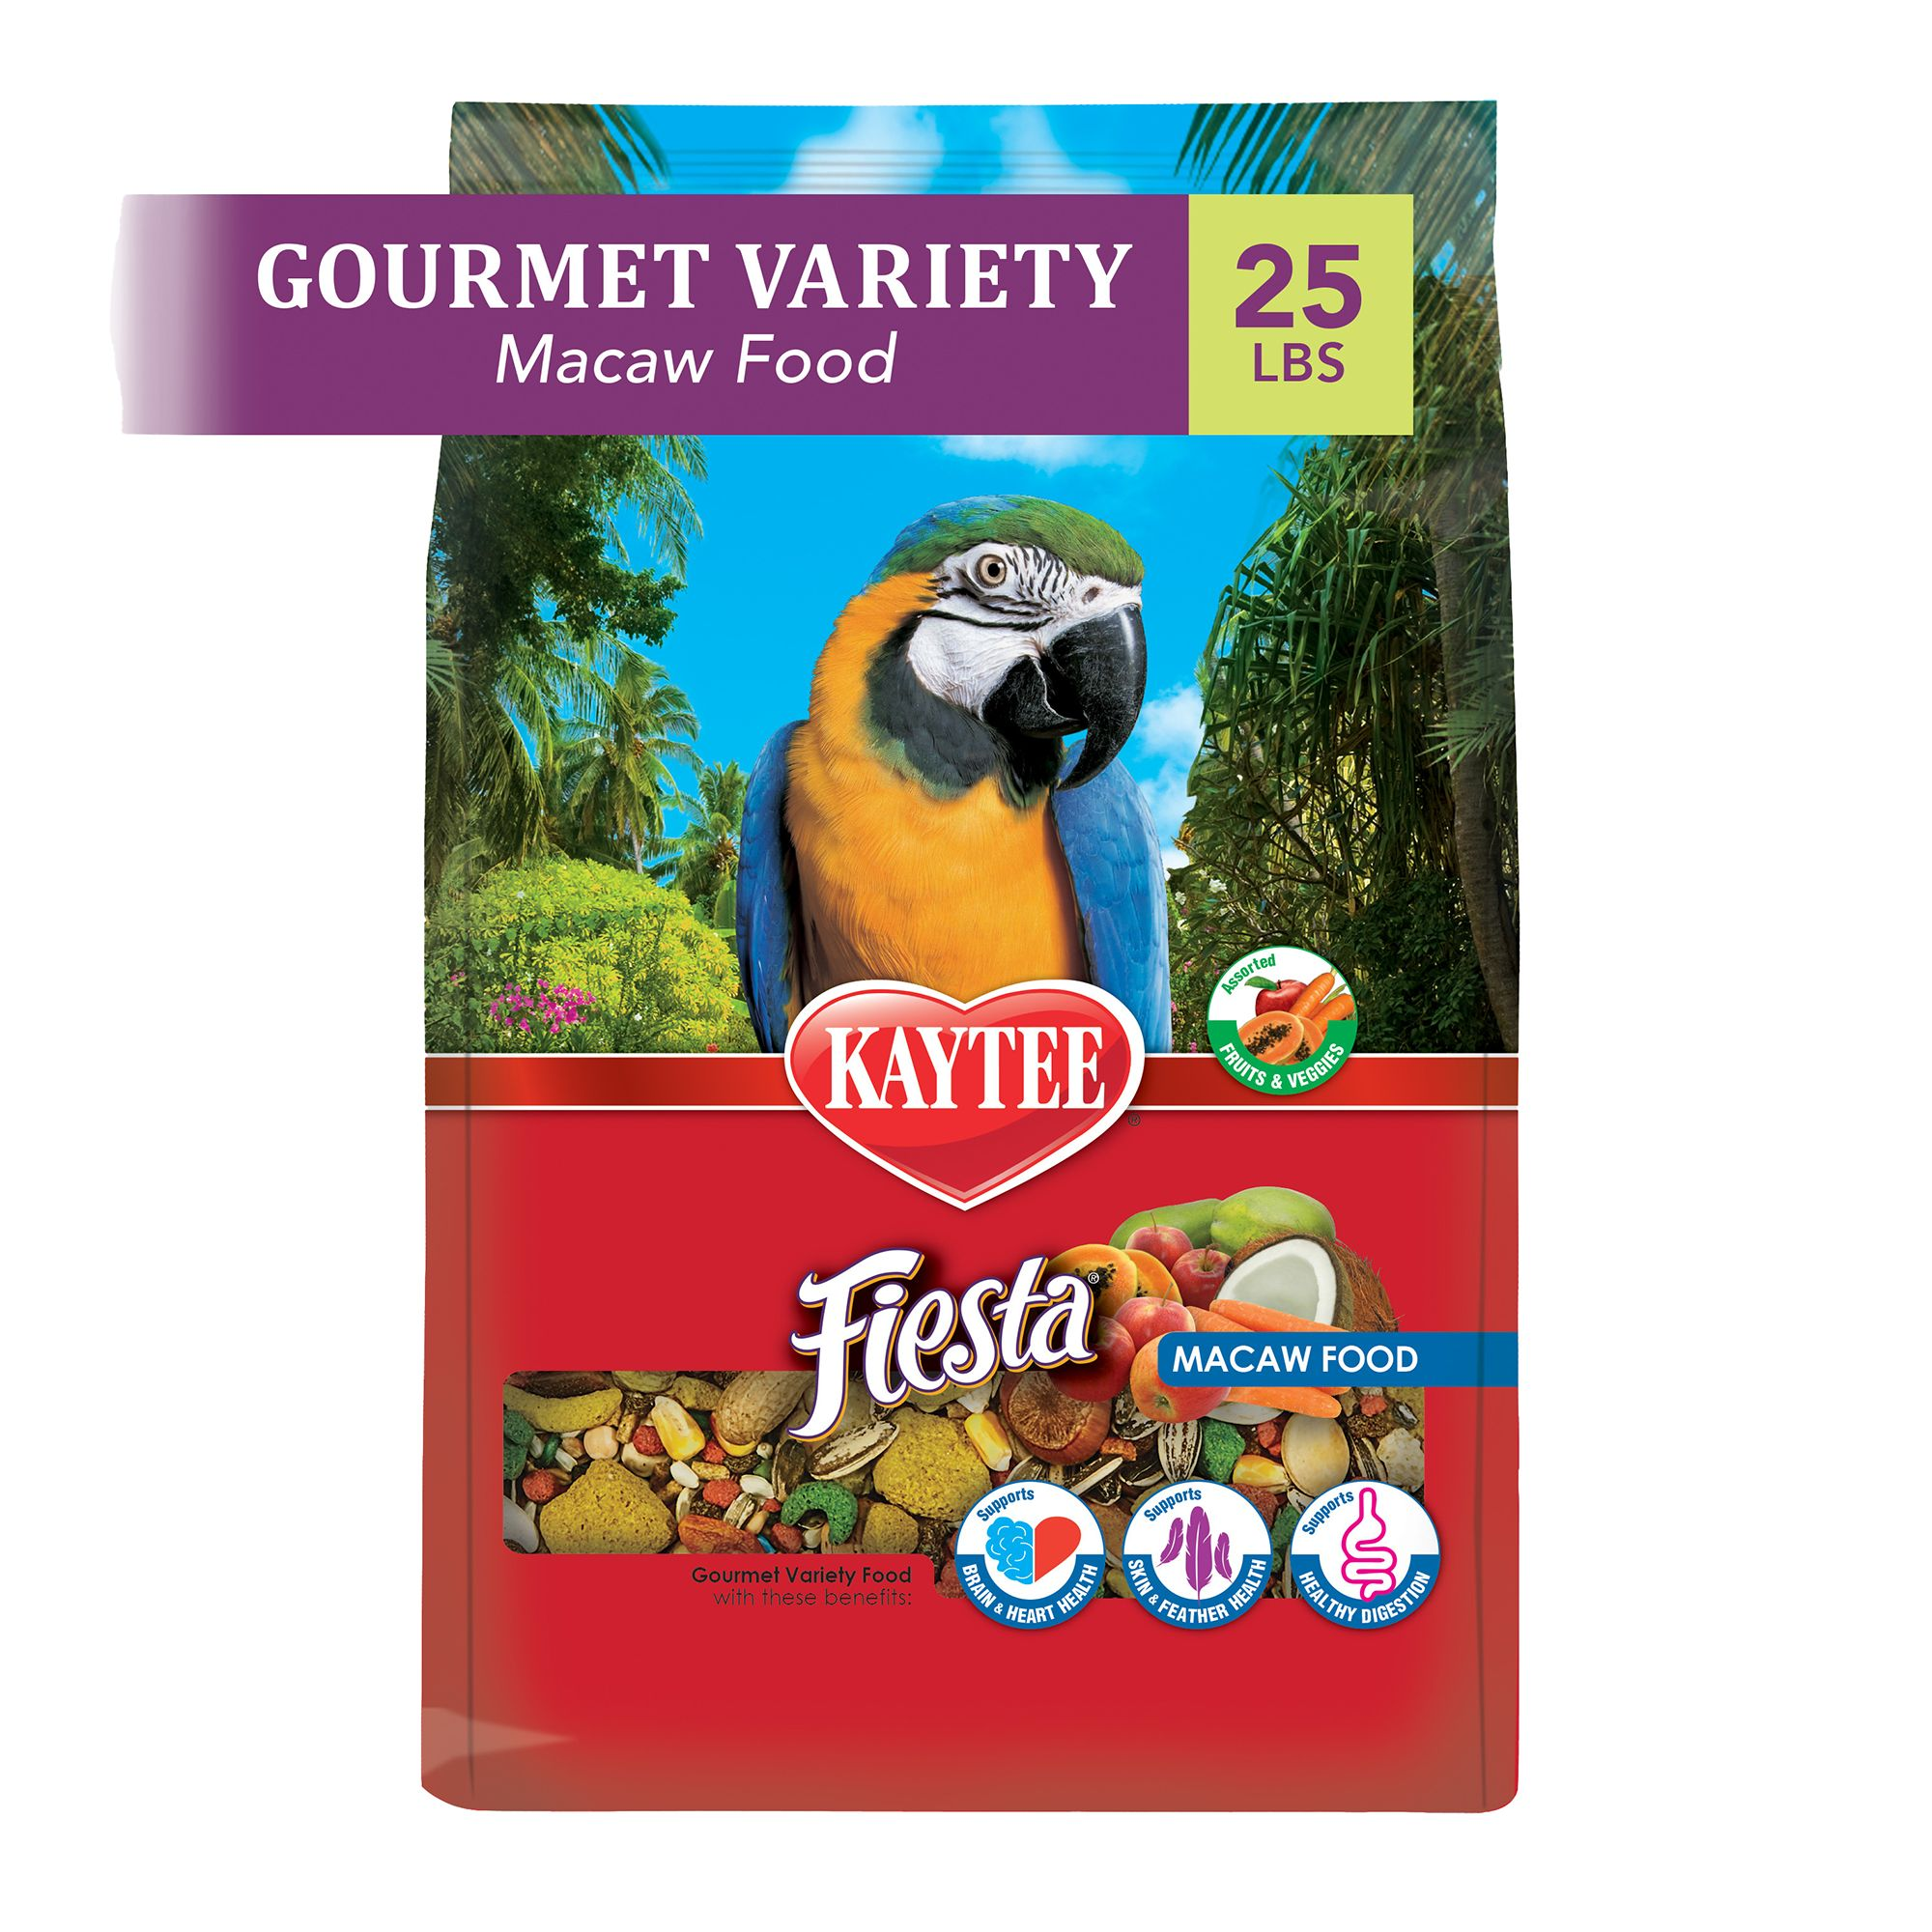 Kaytee Fiesta Macaw Food size: 25 Lb, Kibble, Seed, Fruits, Nuts, Adult, Sunflower Seed 5271782